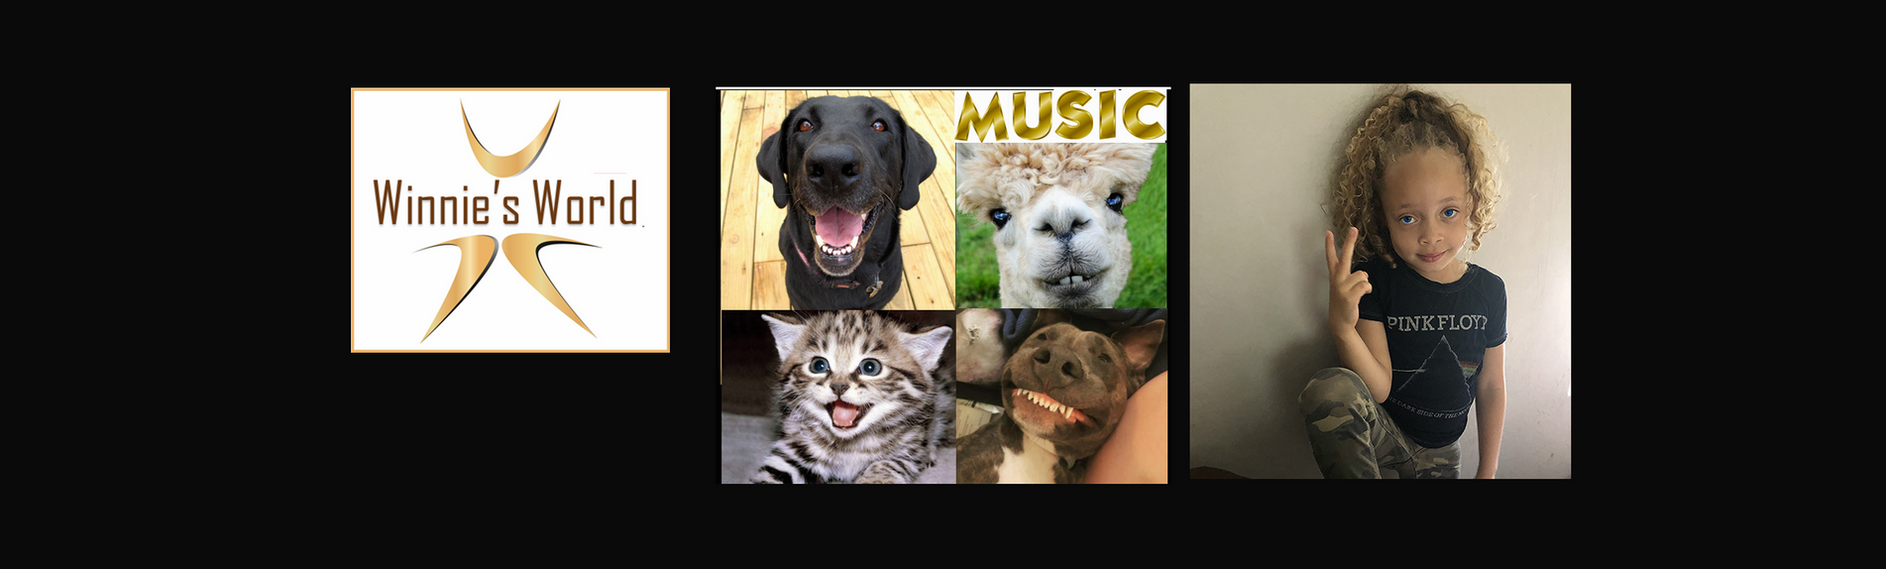 Music and Dogs Cat Lama 2.png